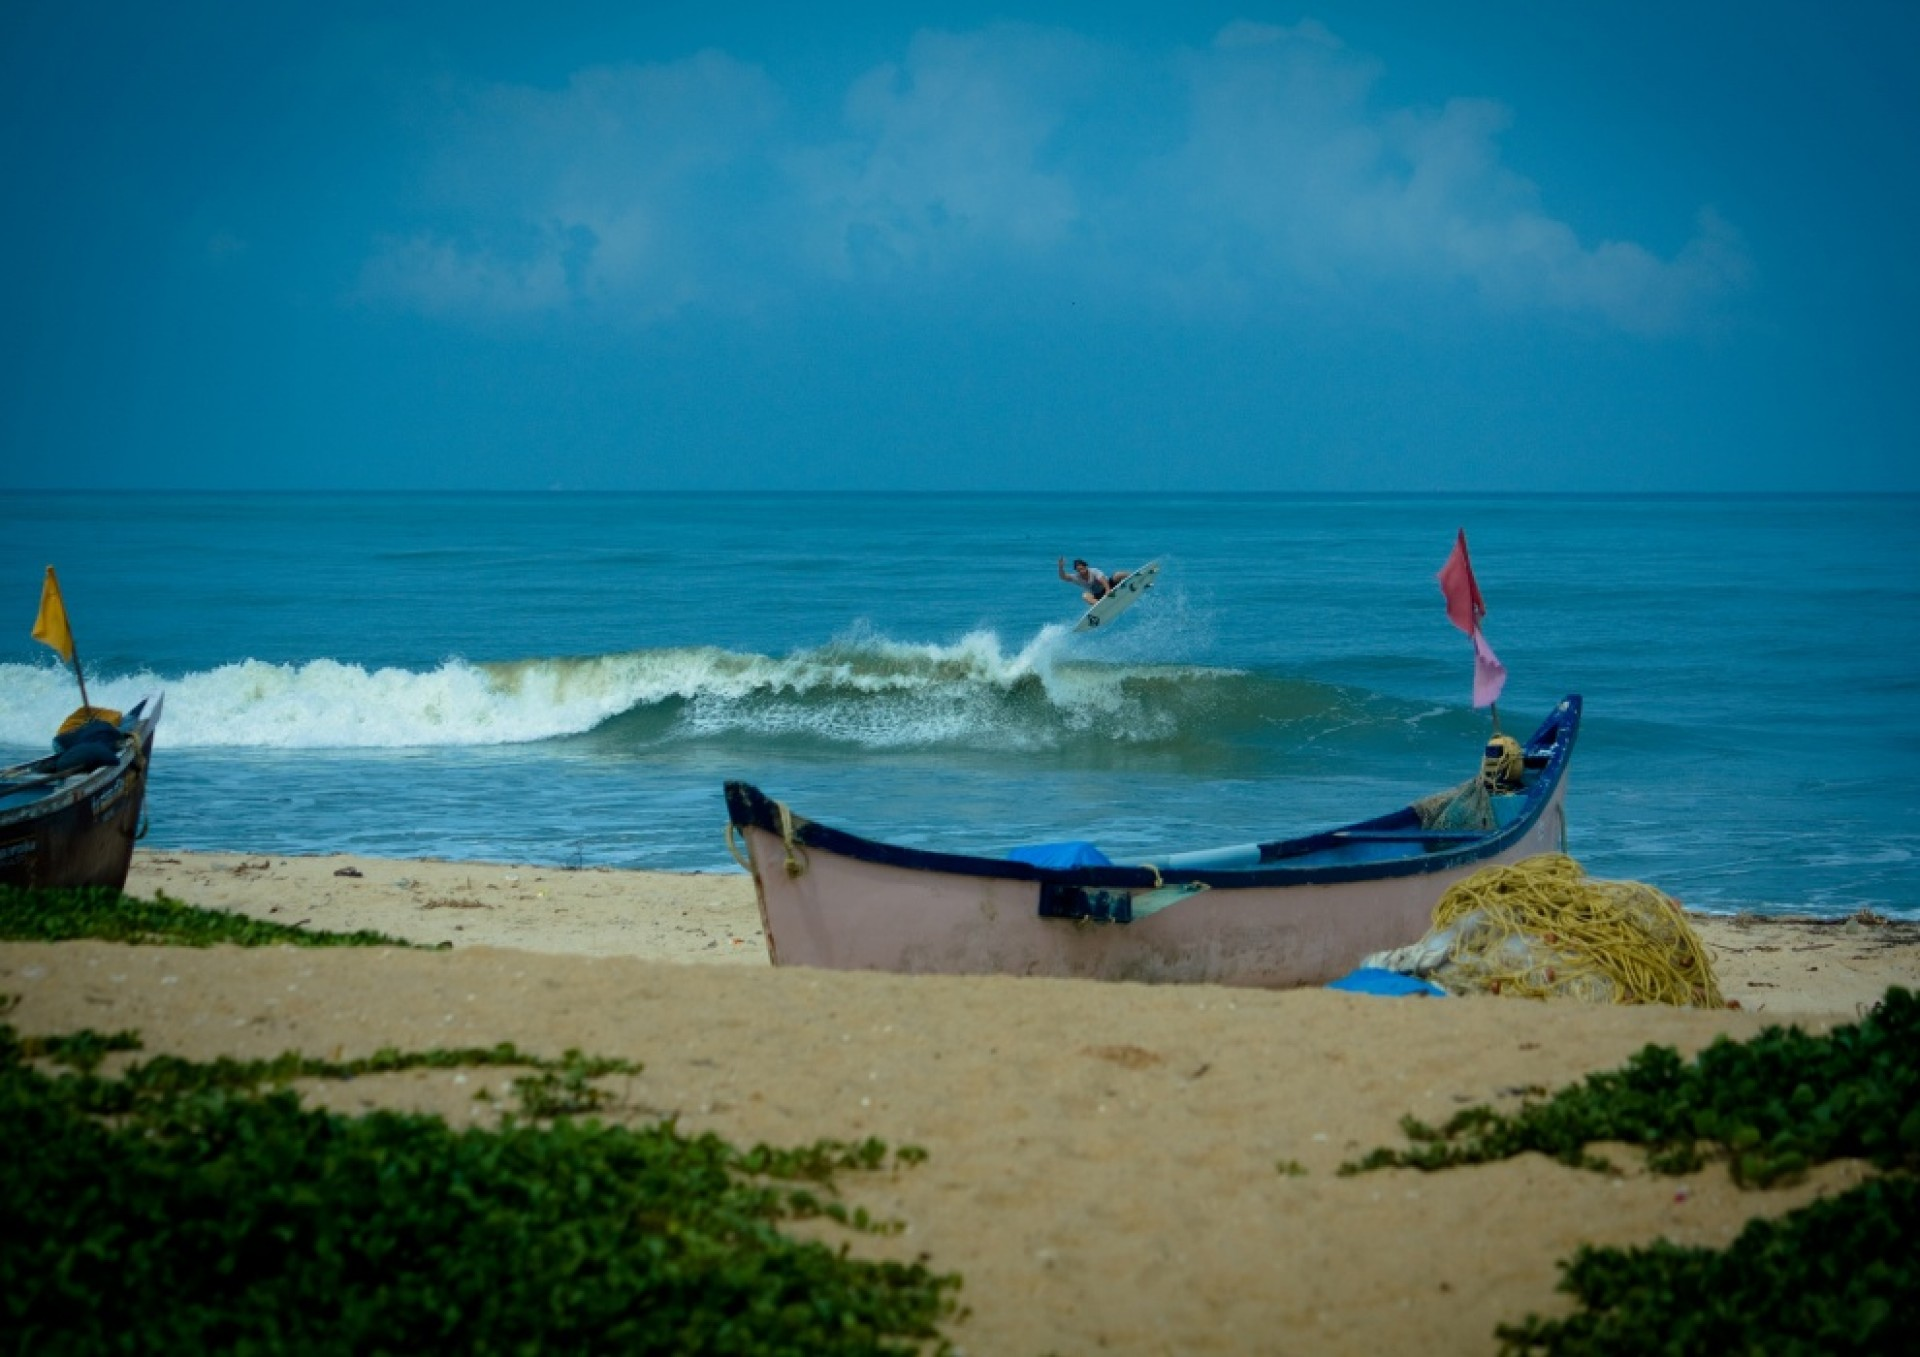 Dustin Ellison's photo of Mangalore Port